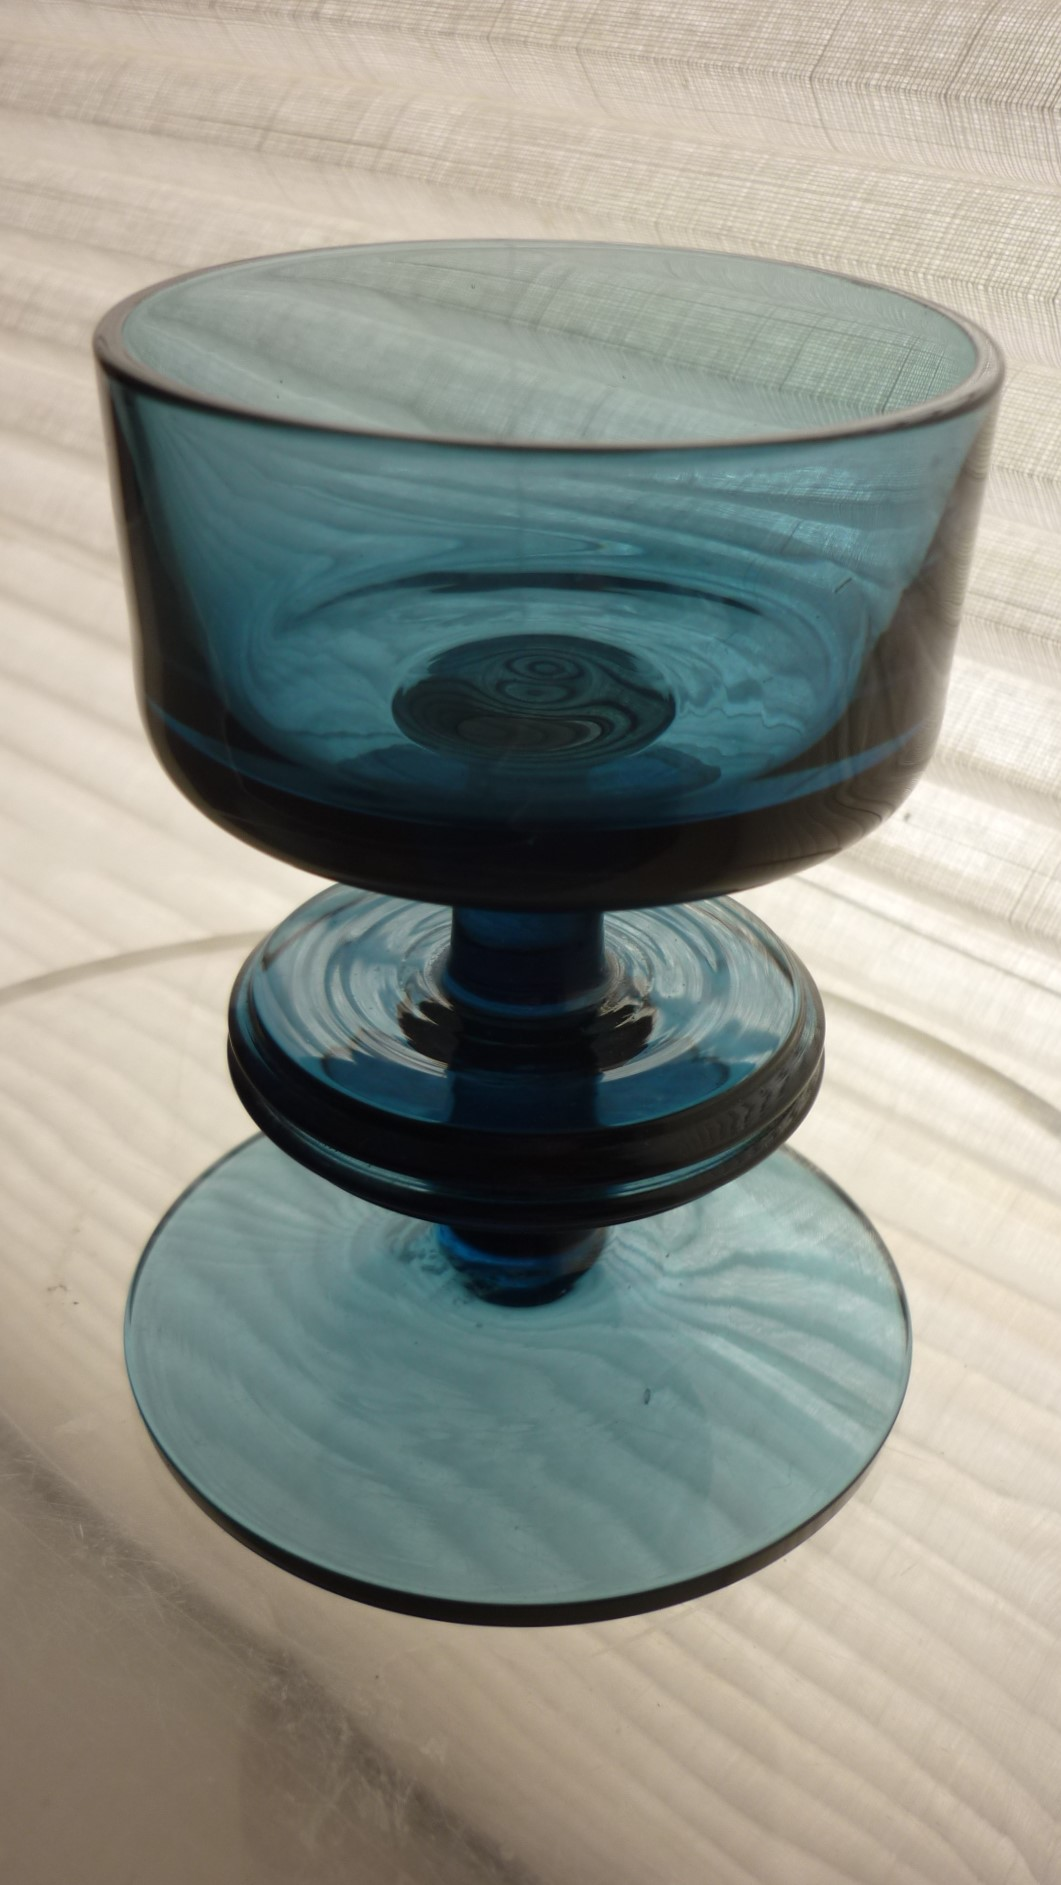 1967 vintage blue Ronald Stennet-Willson one ring Sherringham Pattern RSW13 glass candle holder.